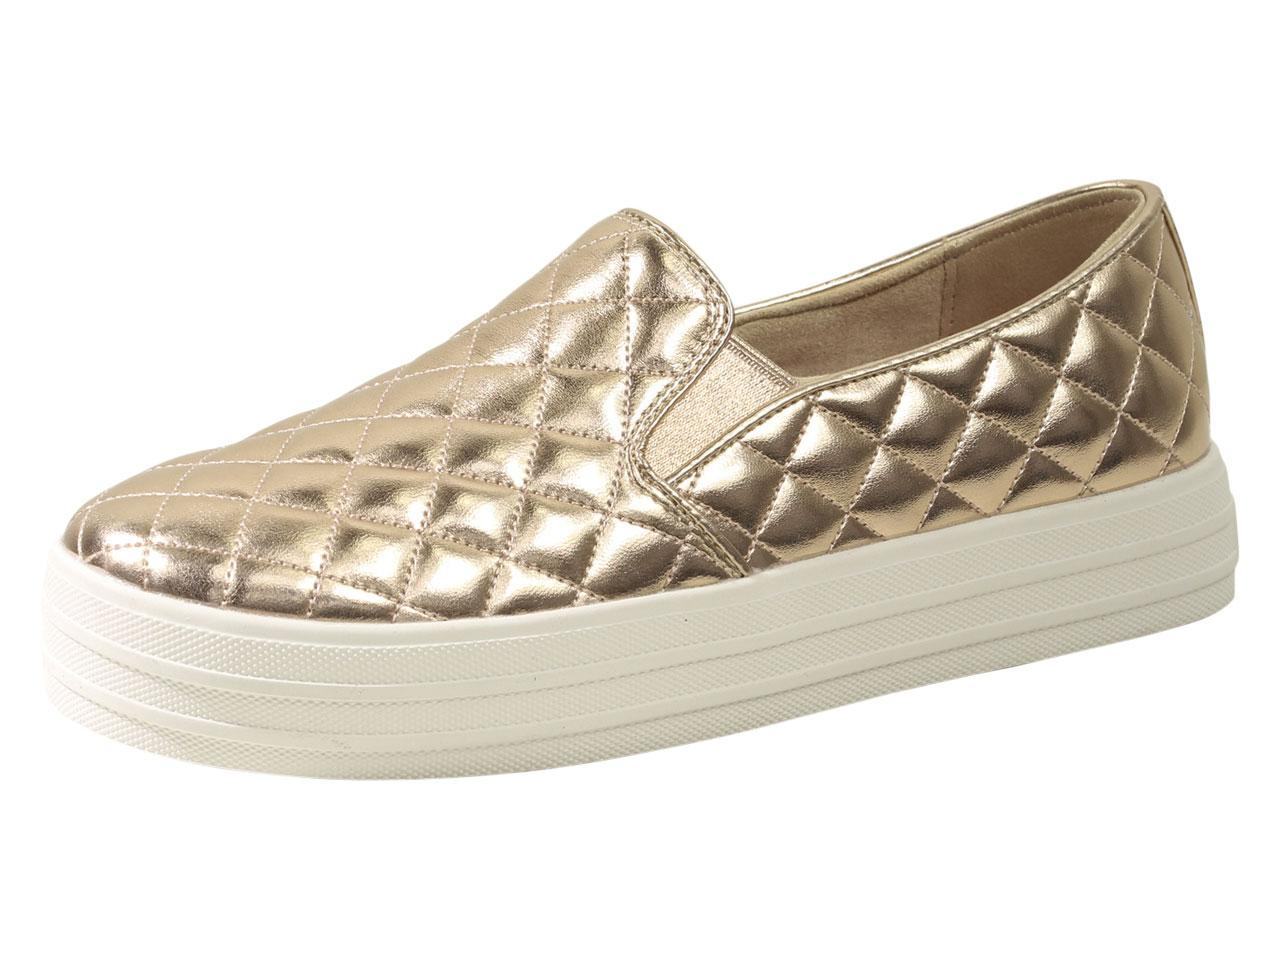 a71baef8b44 Skechers Women s Double Up Duvet Memory Foam Loafers Shoes